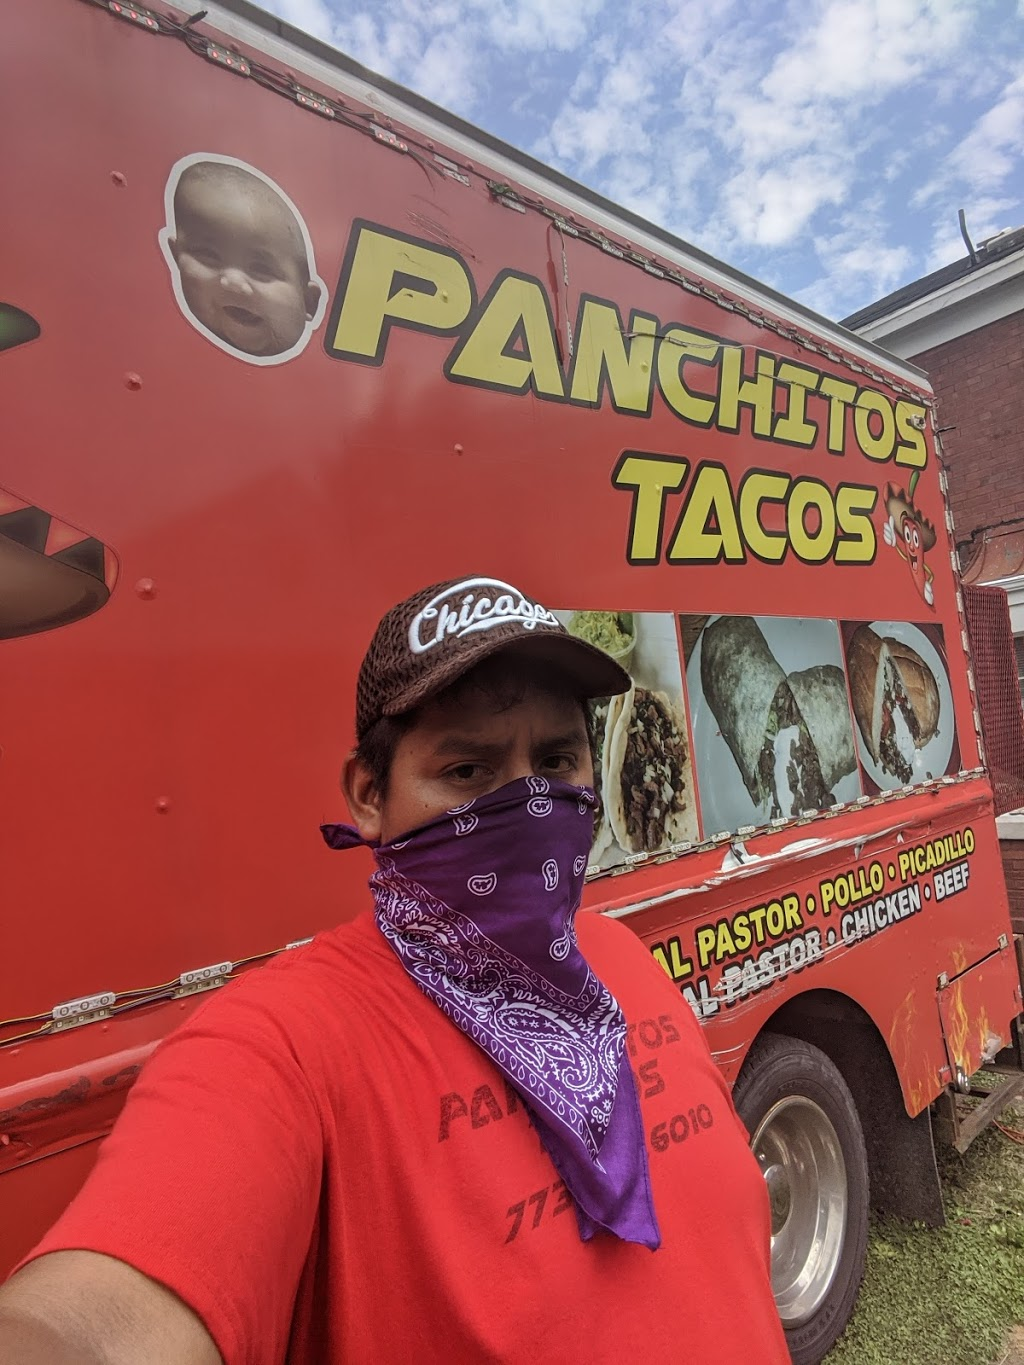 Panchitos Tacos Truck - restaurant  | Photo 10 of 10 | Address: 4900 W Gladys Ave, Chicago, IL 60644, USA | Phone: (773) 574-5964